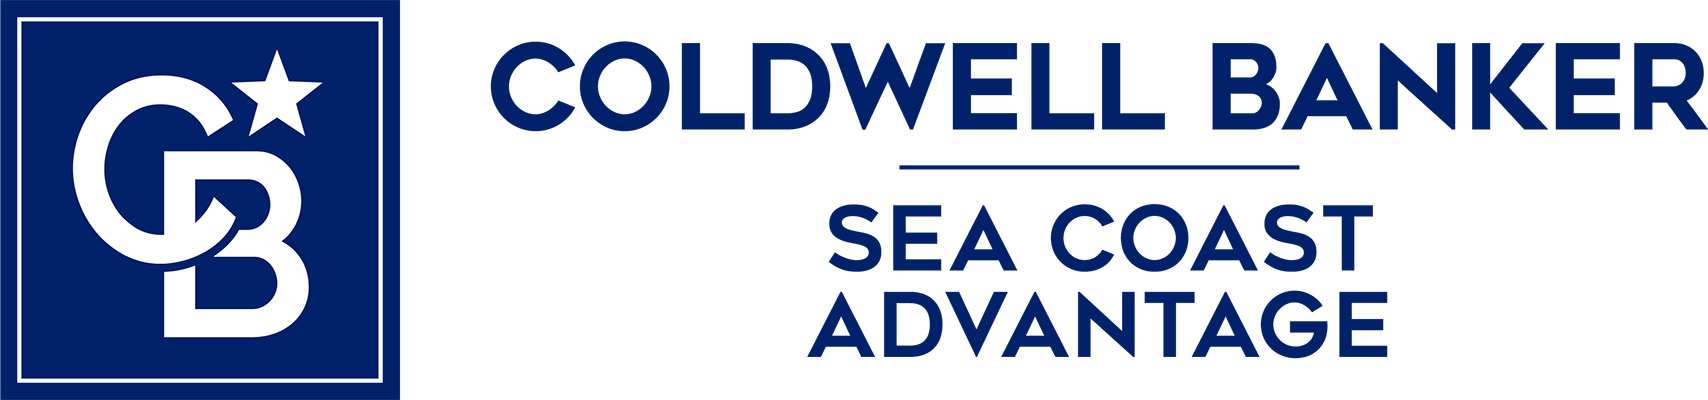 Surf & Turf Properties - Coldwell Banker Sea Coast Advantage Logo